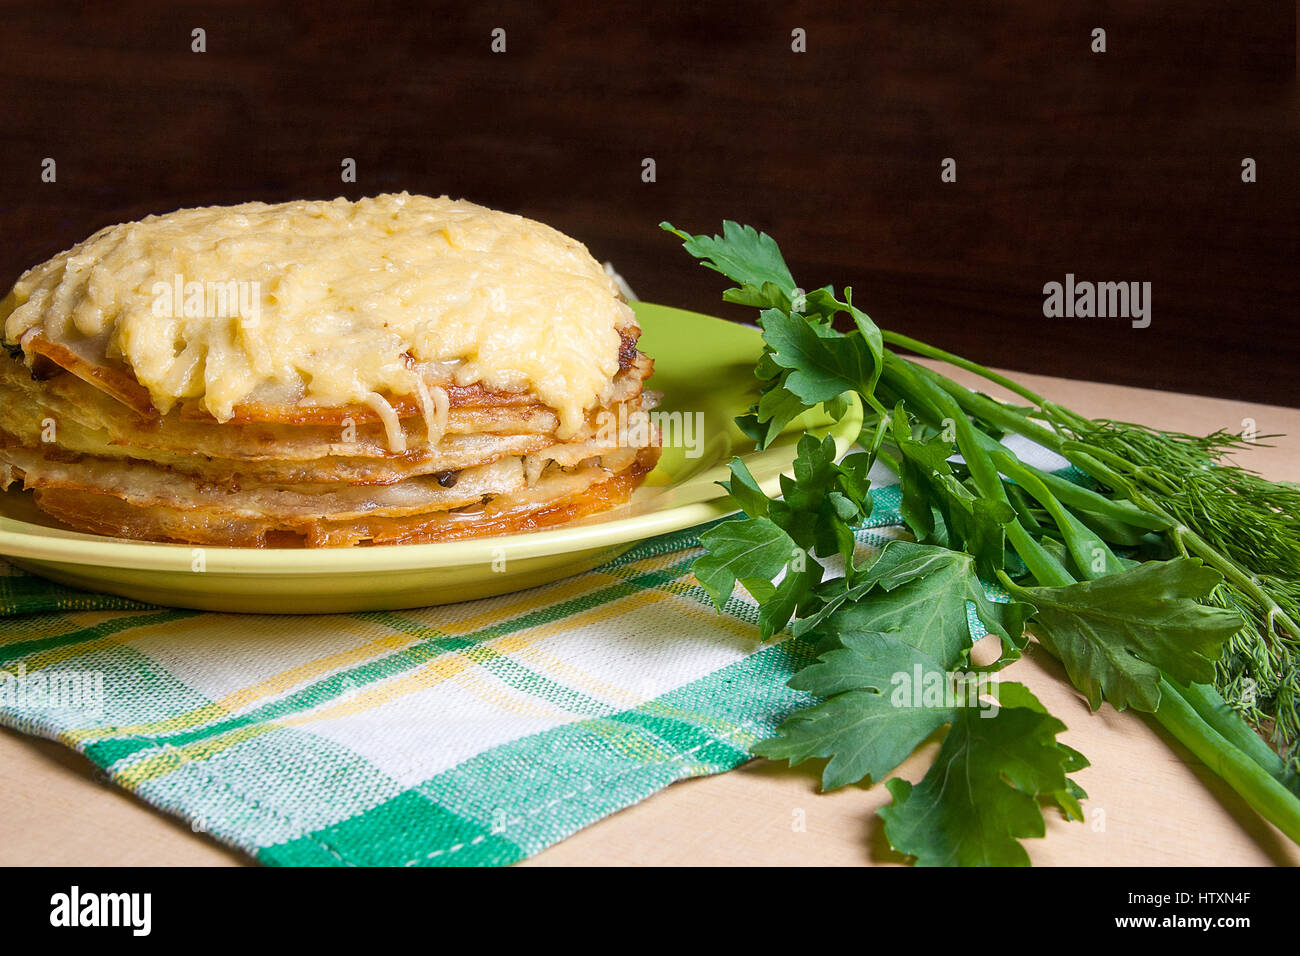 Pancake pie with mushrooms and chicken meat baked with cheese on green plate. Pancake cake on green plate with herbs dill green onion parsley arou & Pancake pie with mushrooms and chicken meat baked with cheese on ...